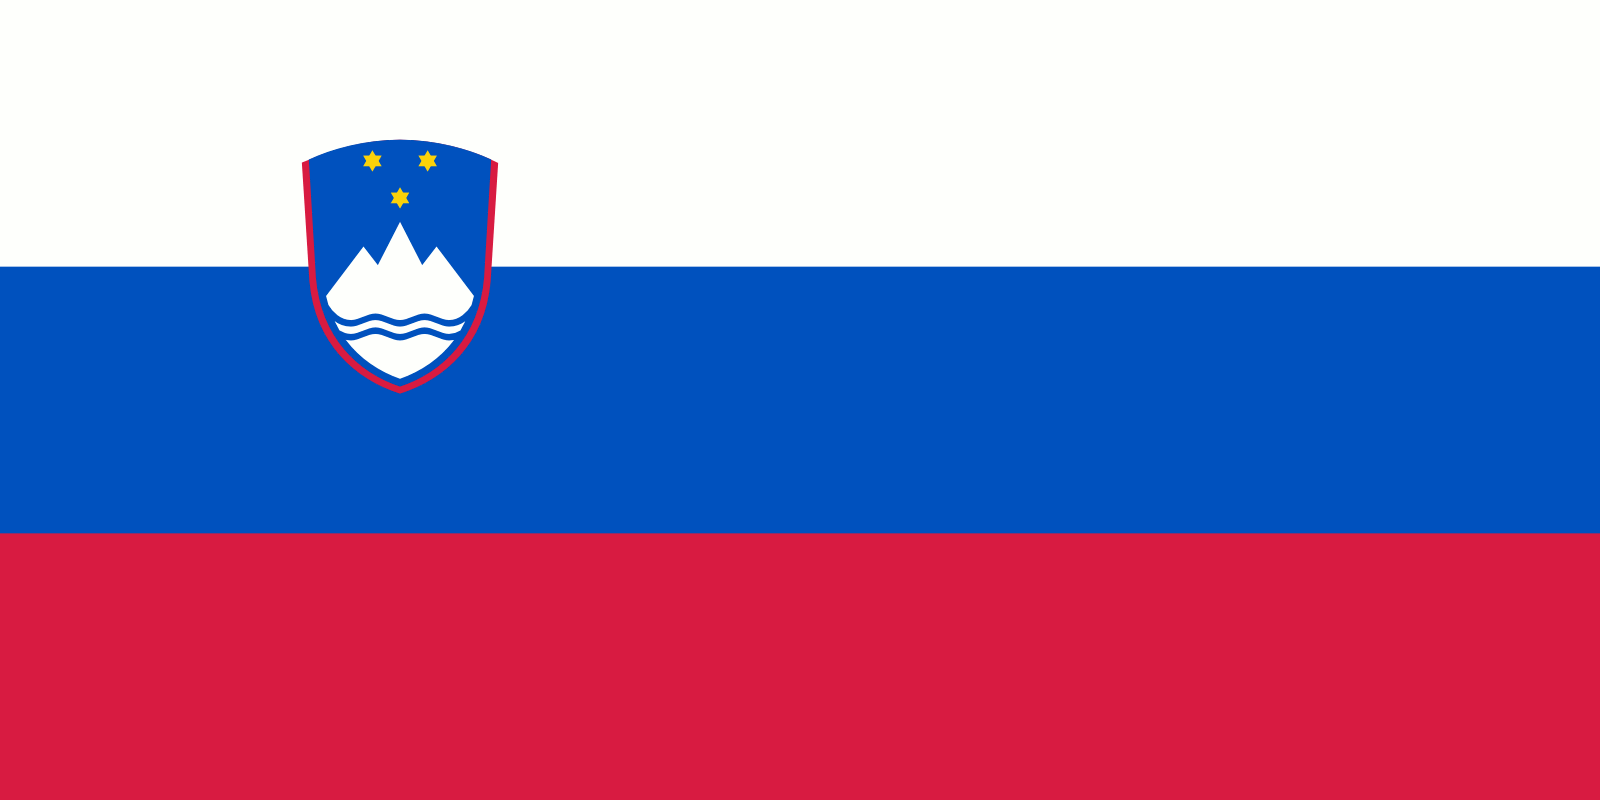 Flag Of Slovenia Wallpapers Misc Hq Flag Of Slovenia Pictures 4k Wallpapers 2019